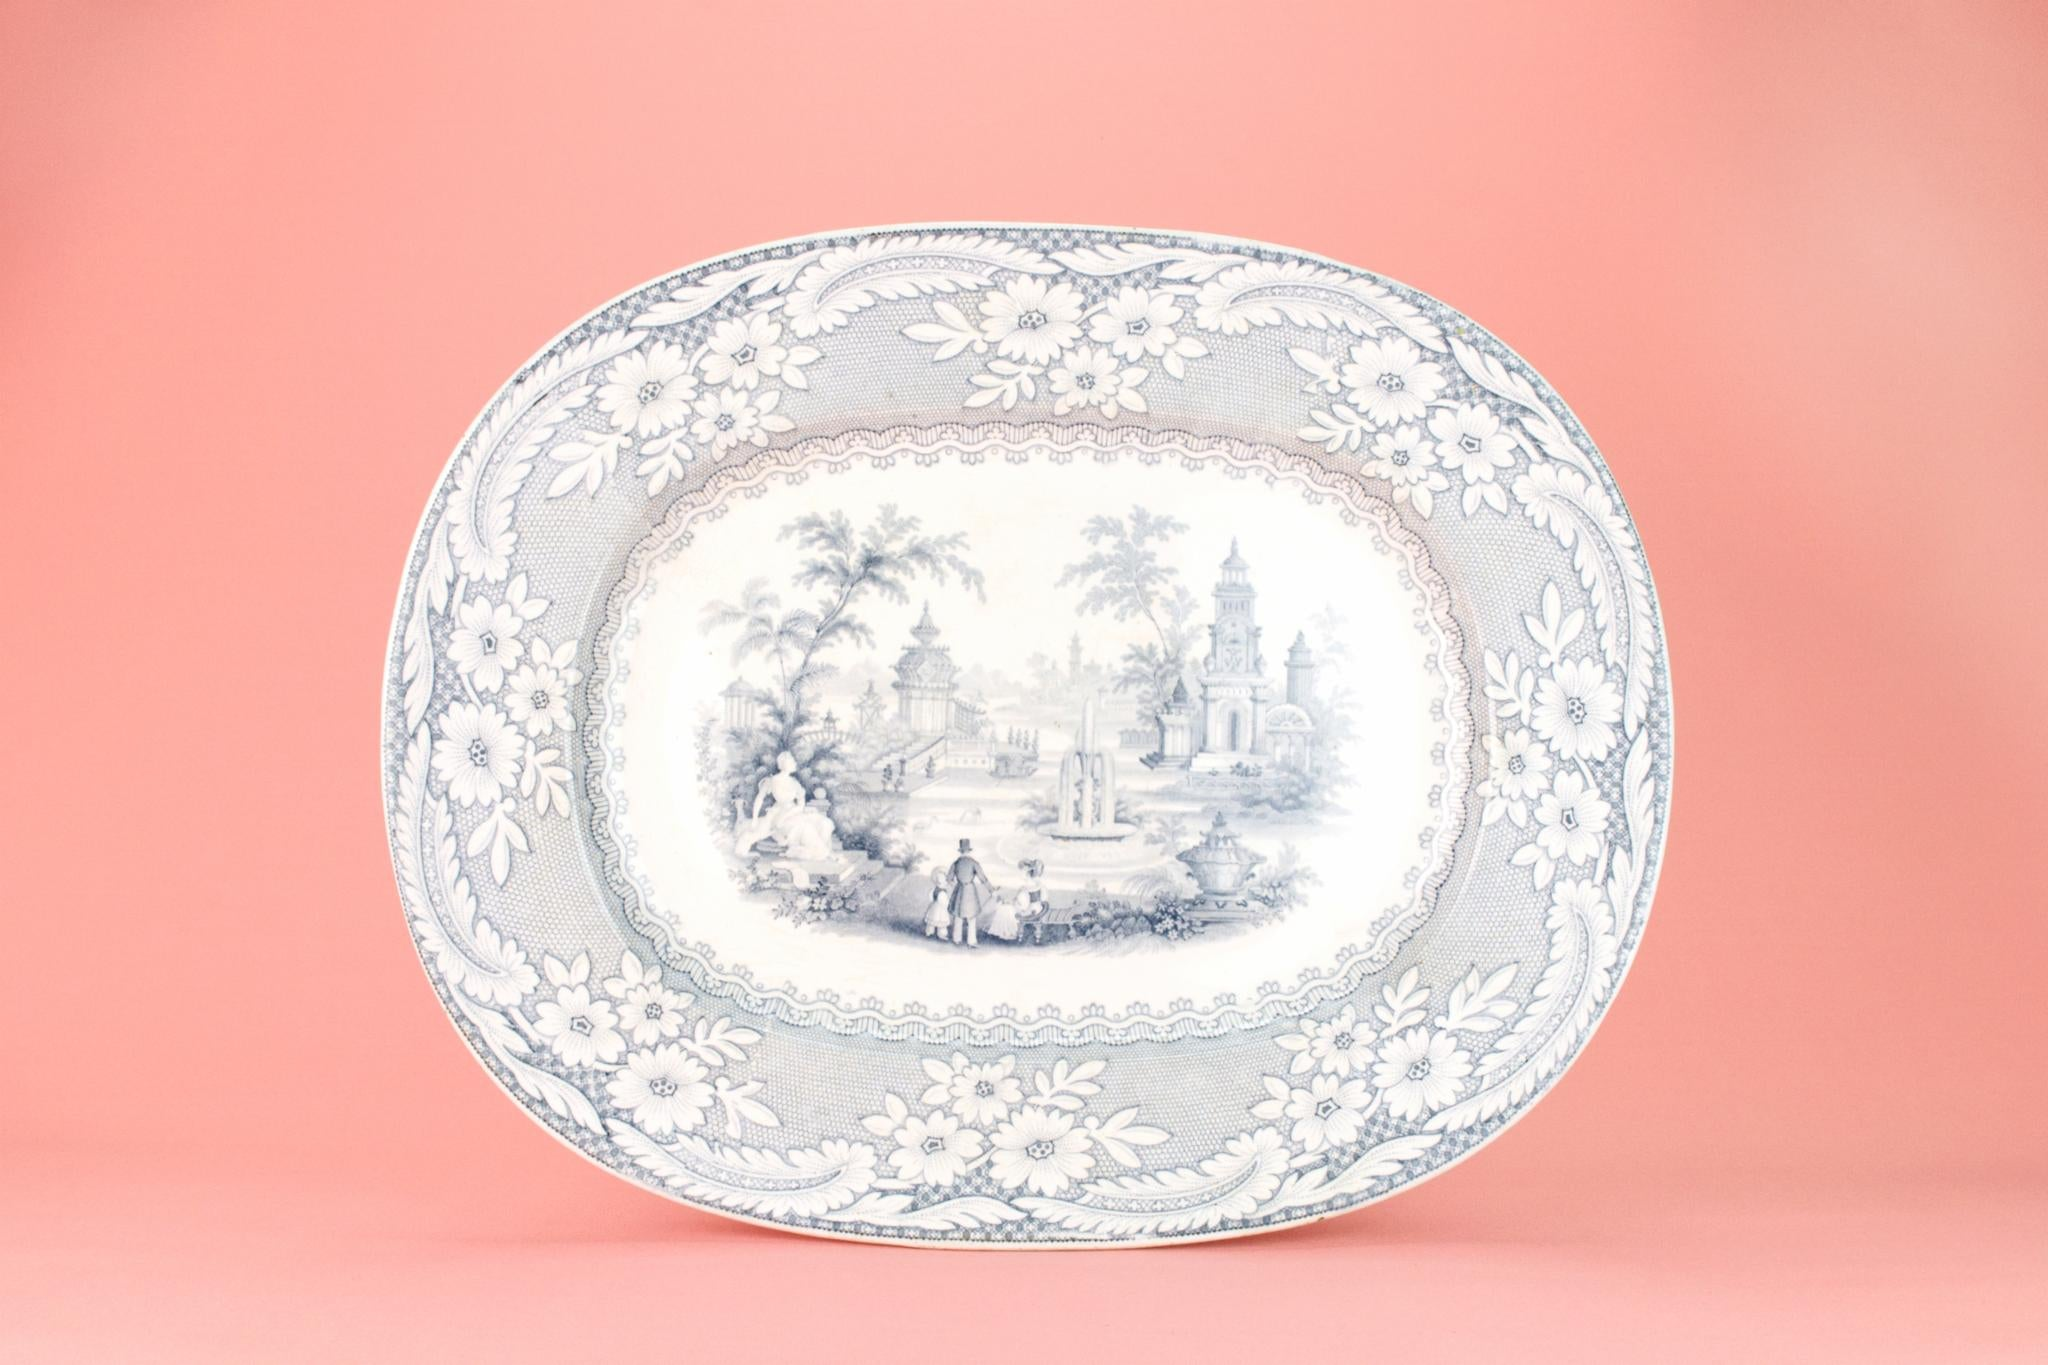 Blue and White Large Serving Platter, English 1870s